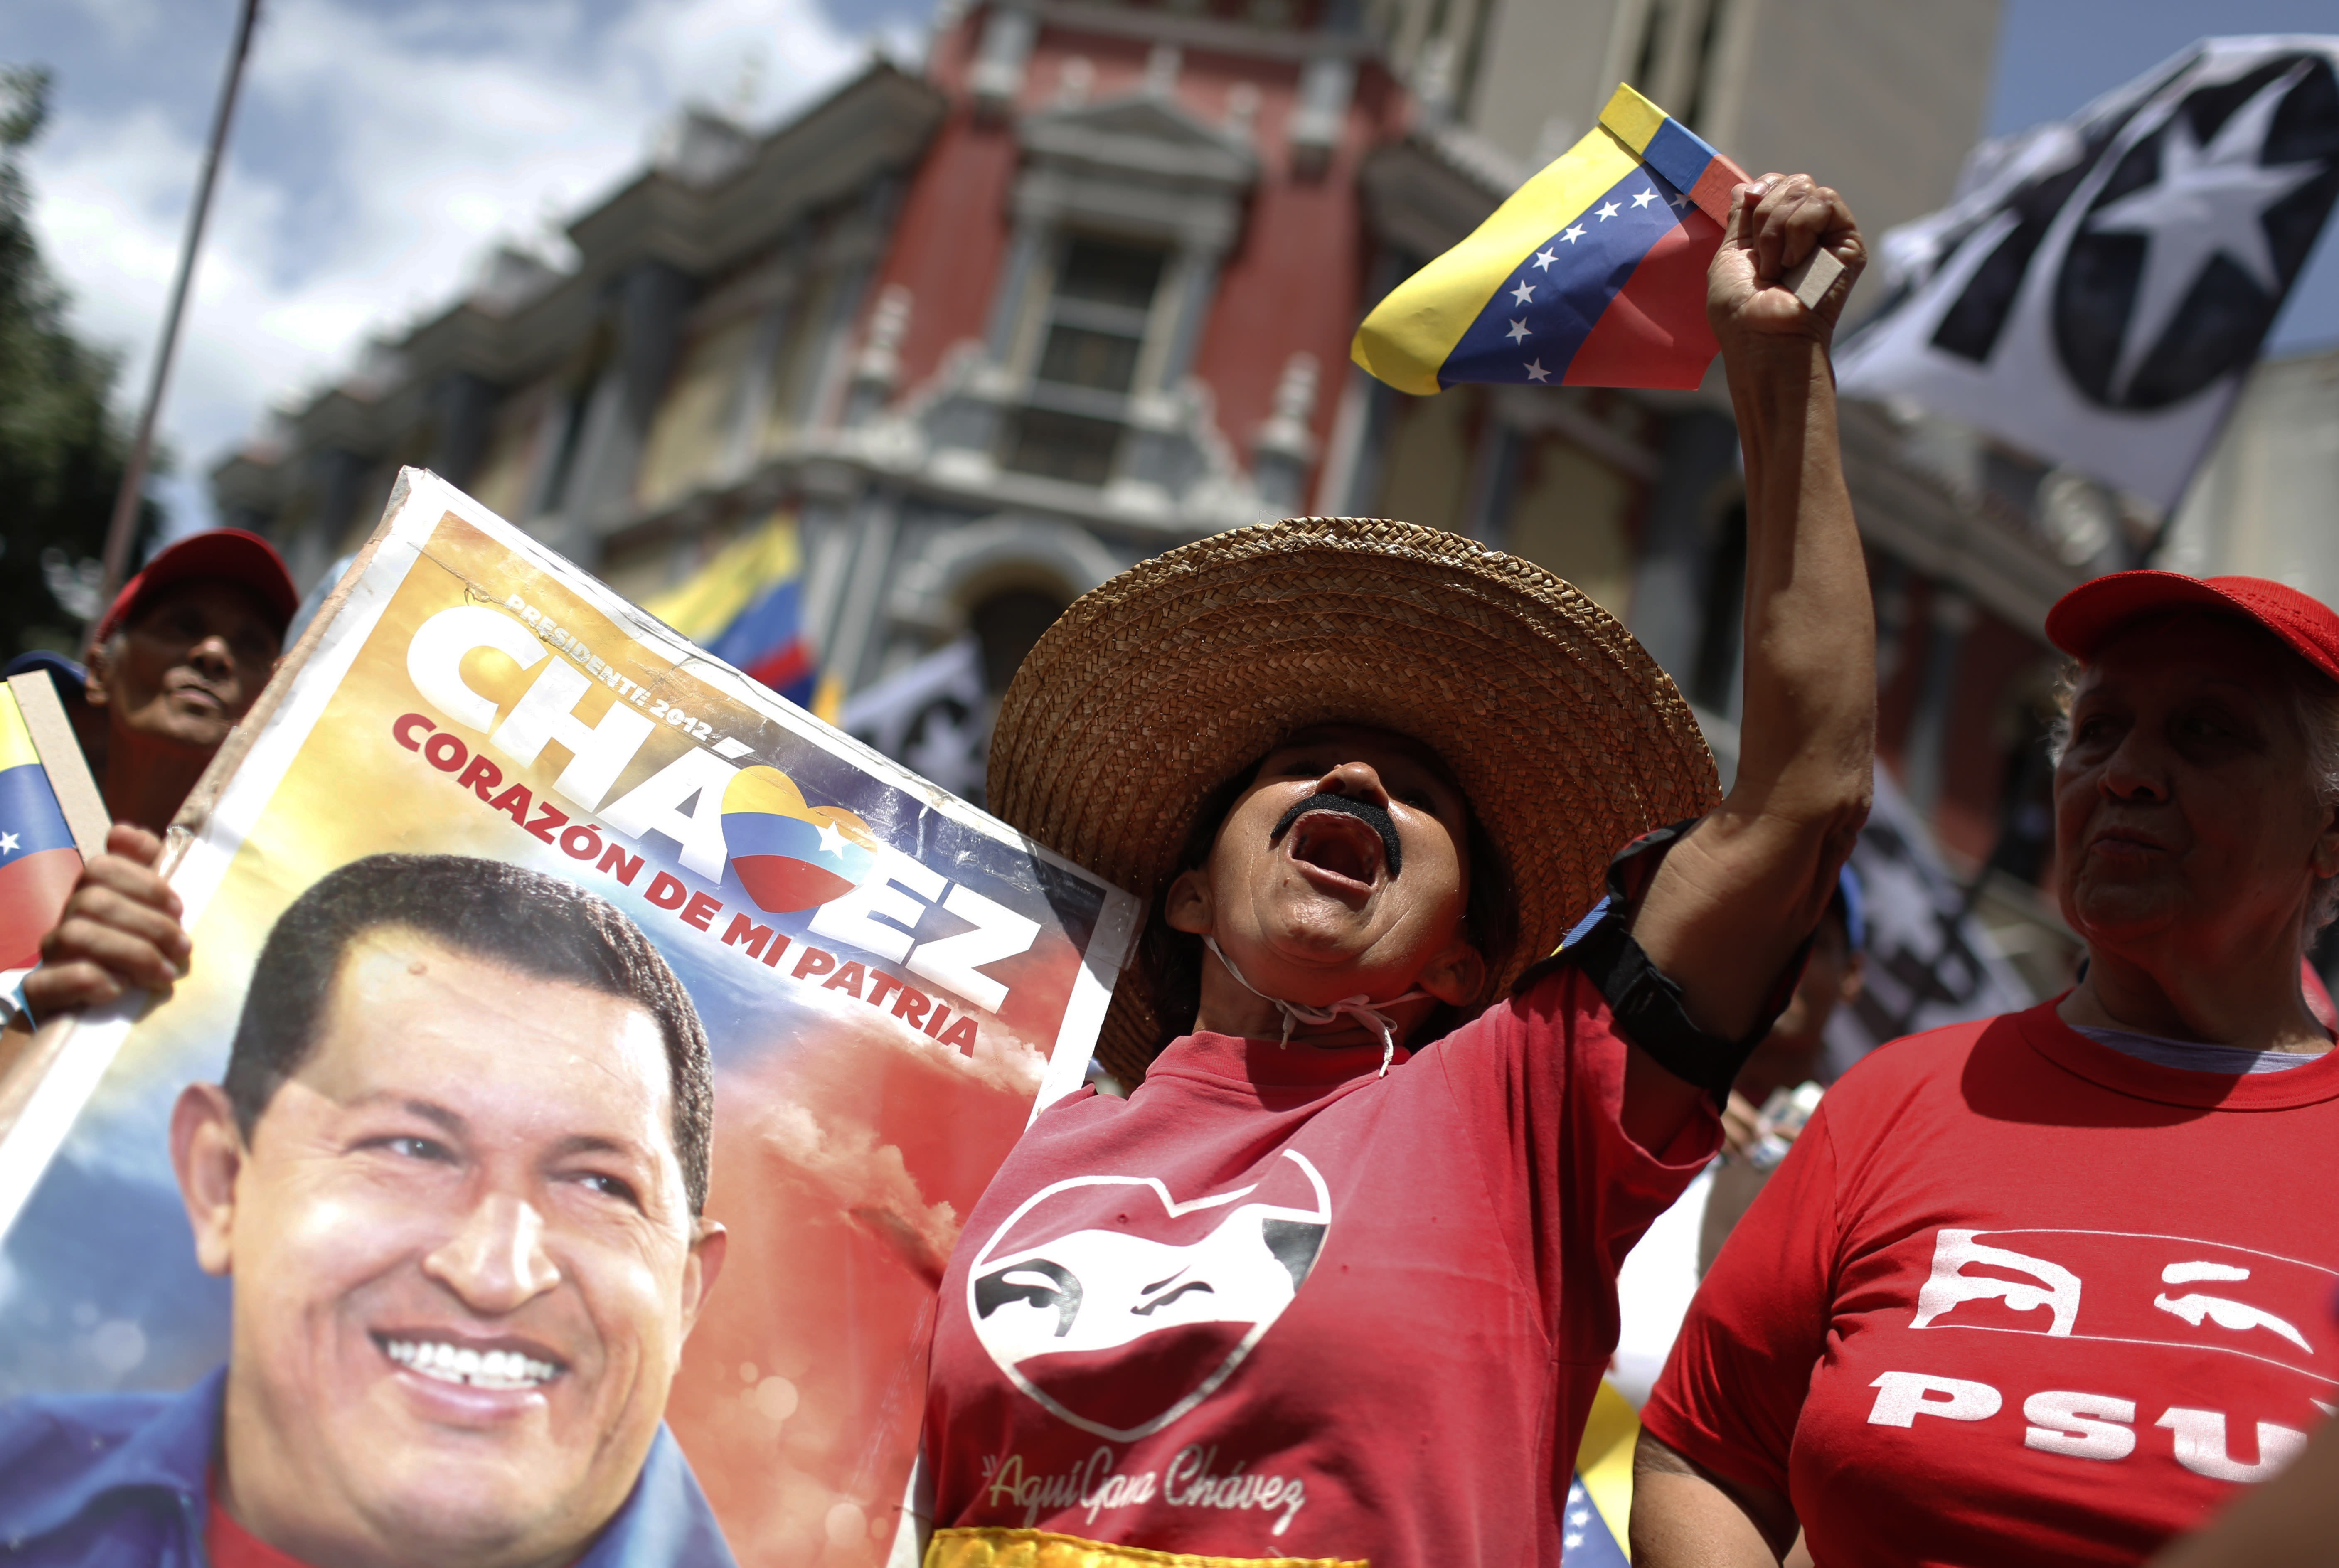 A government supporter holding an image of late Venezuelan President Hugo Chavez cheers during a rally on the sidelines of the Sao Paulo Forum in Caracas, Venezuela, Saturday, July 27, 2019. The Sao Paulo forum, held almost annually and hosted by Cuba last year, was founded as Latin American leftists sought to re-organize after the fall of the Berlin Wall in 1989. (AP Photo/Leonardo Fernandez)